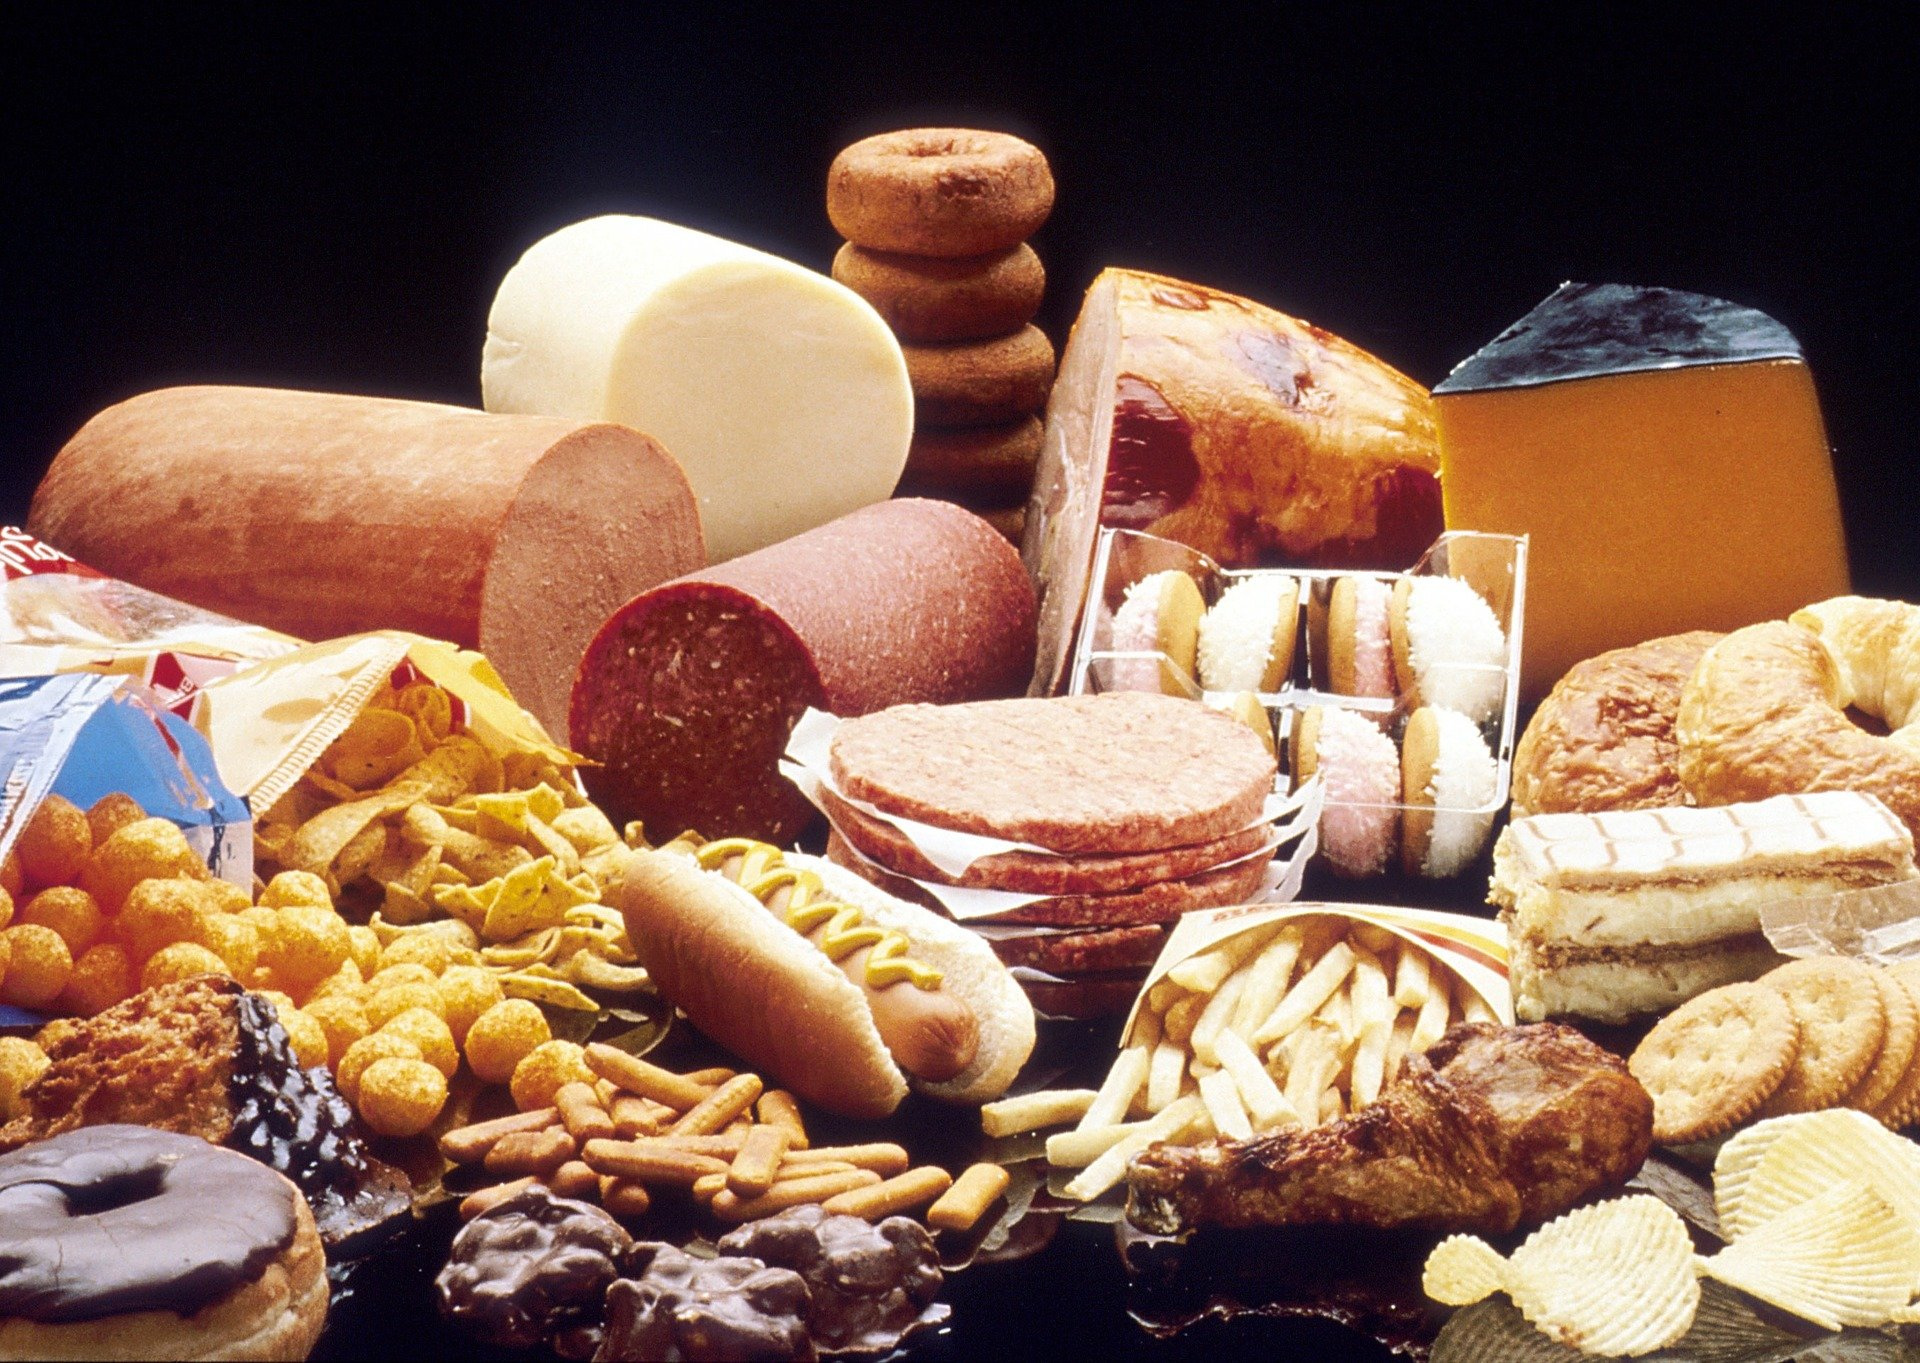 Independent Importer-Wholesaler of Chilled Food Products